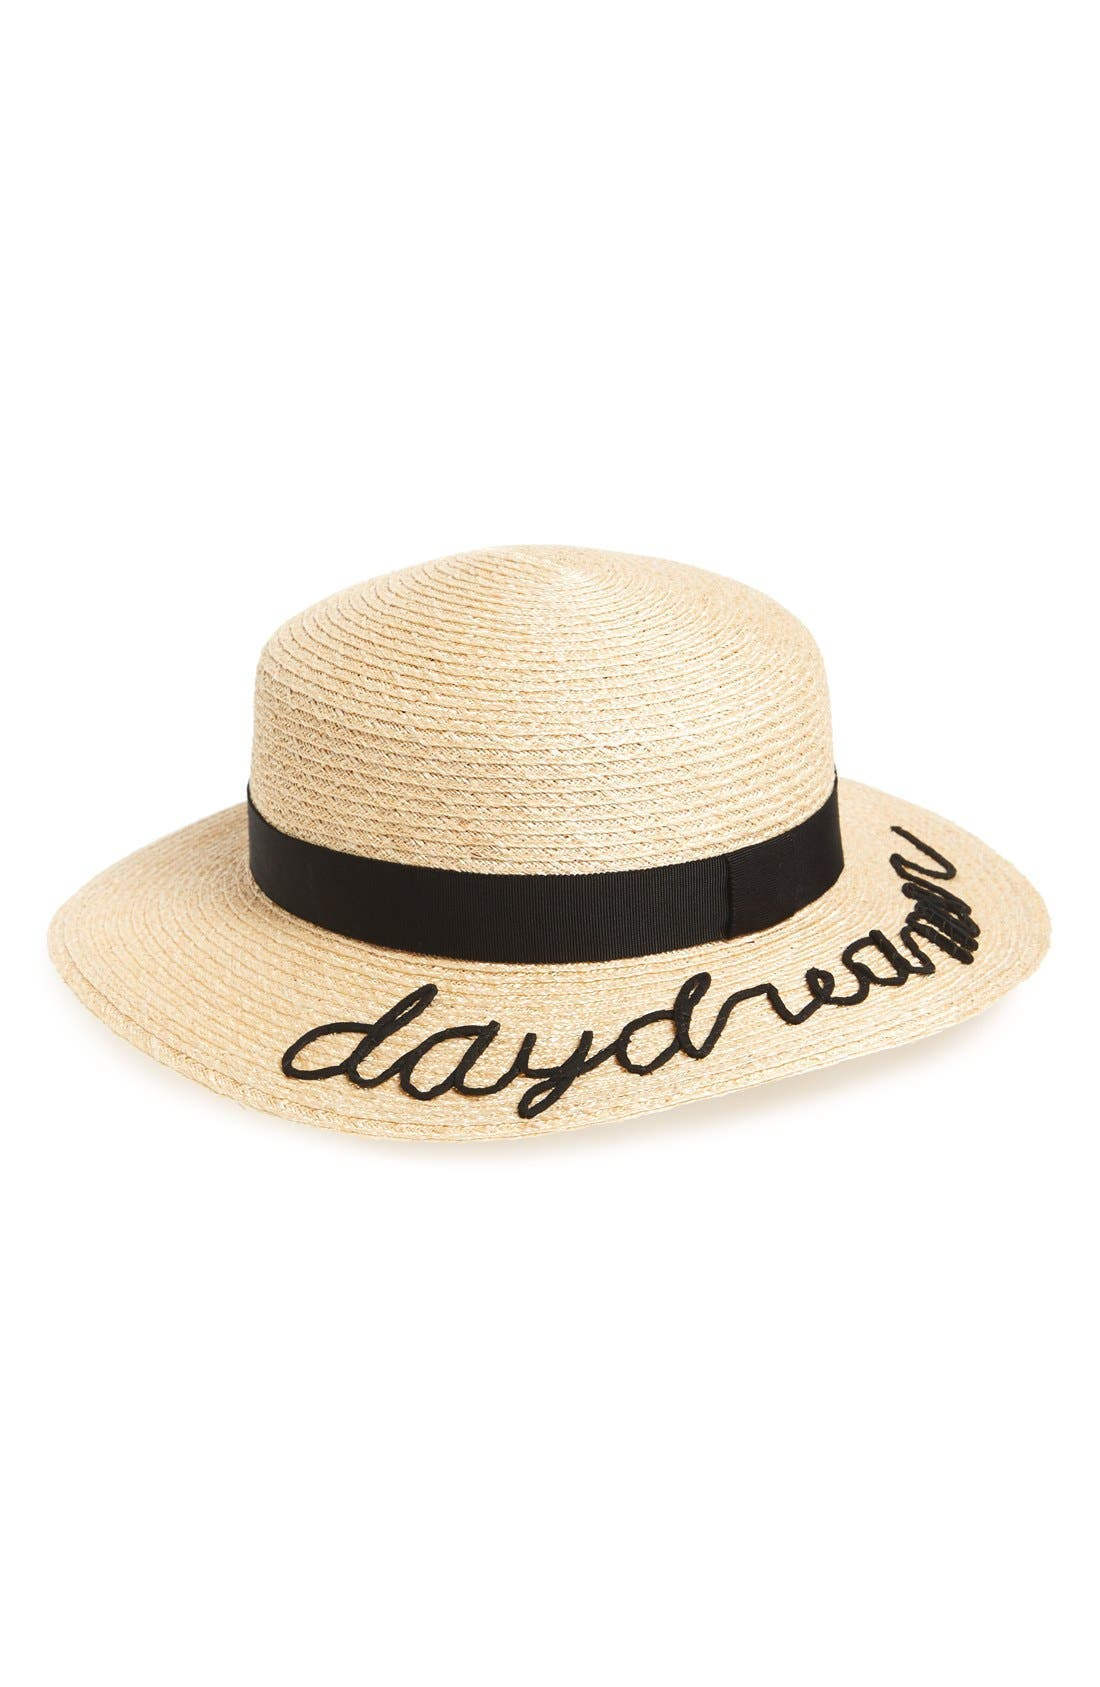 'Daydreamer' Straw Boater Hat,                         Main,                         color, Natural